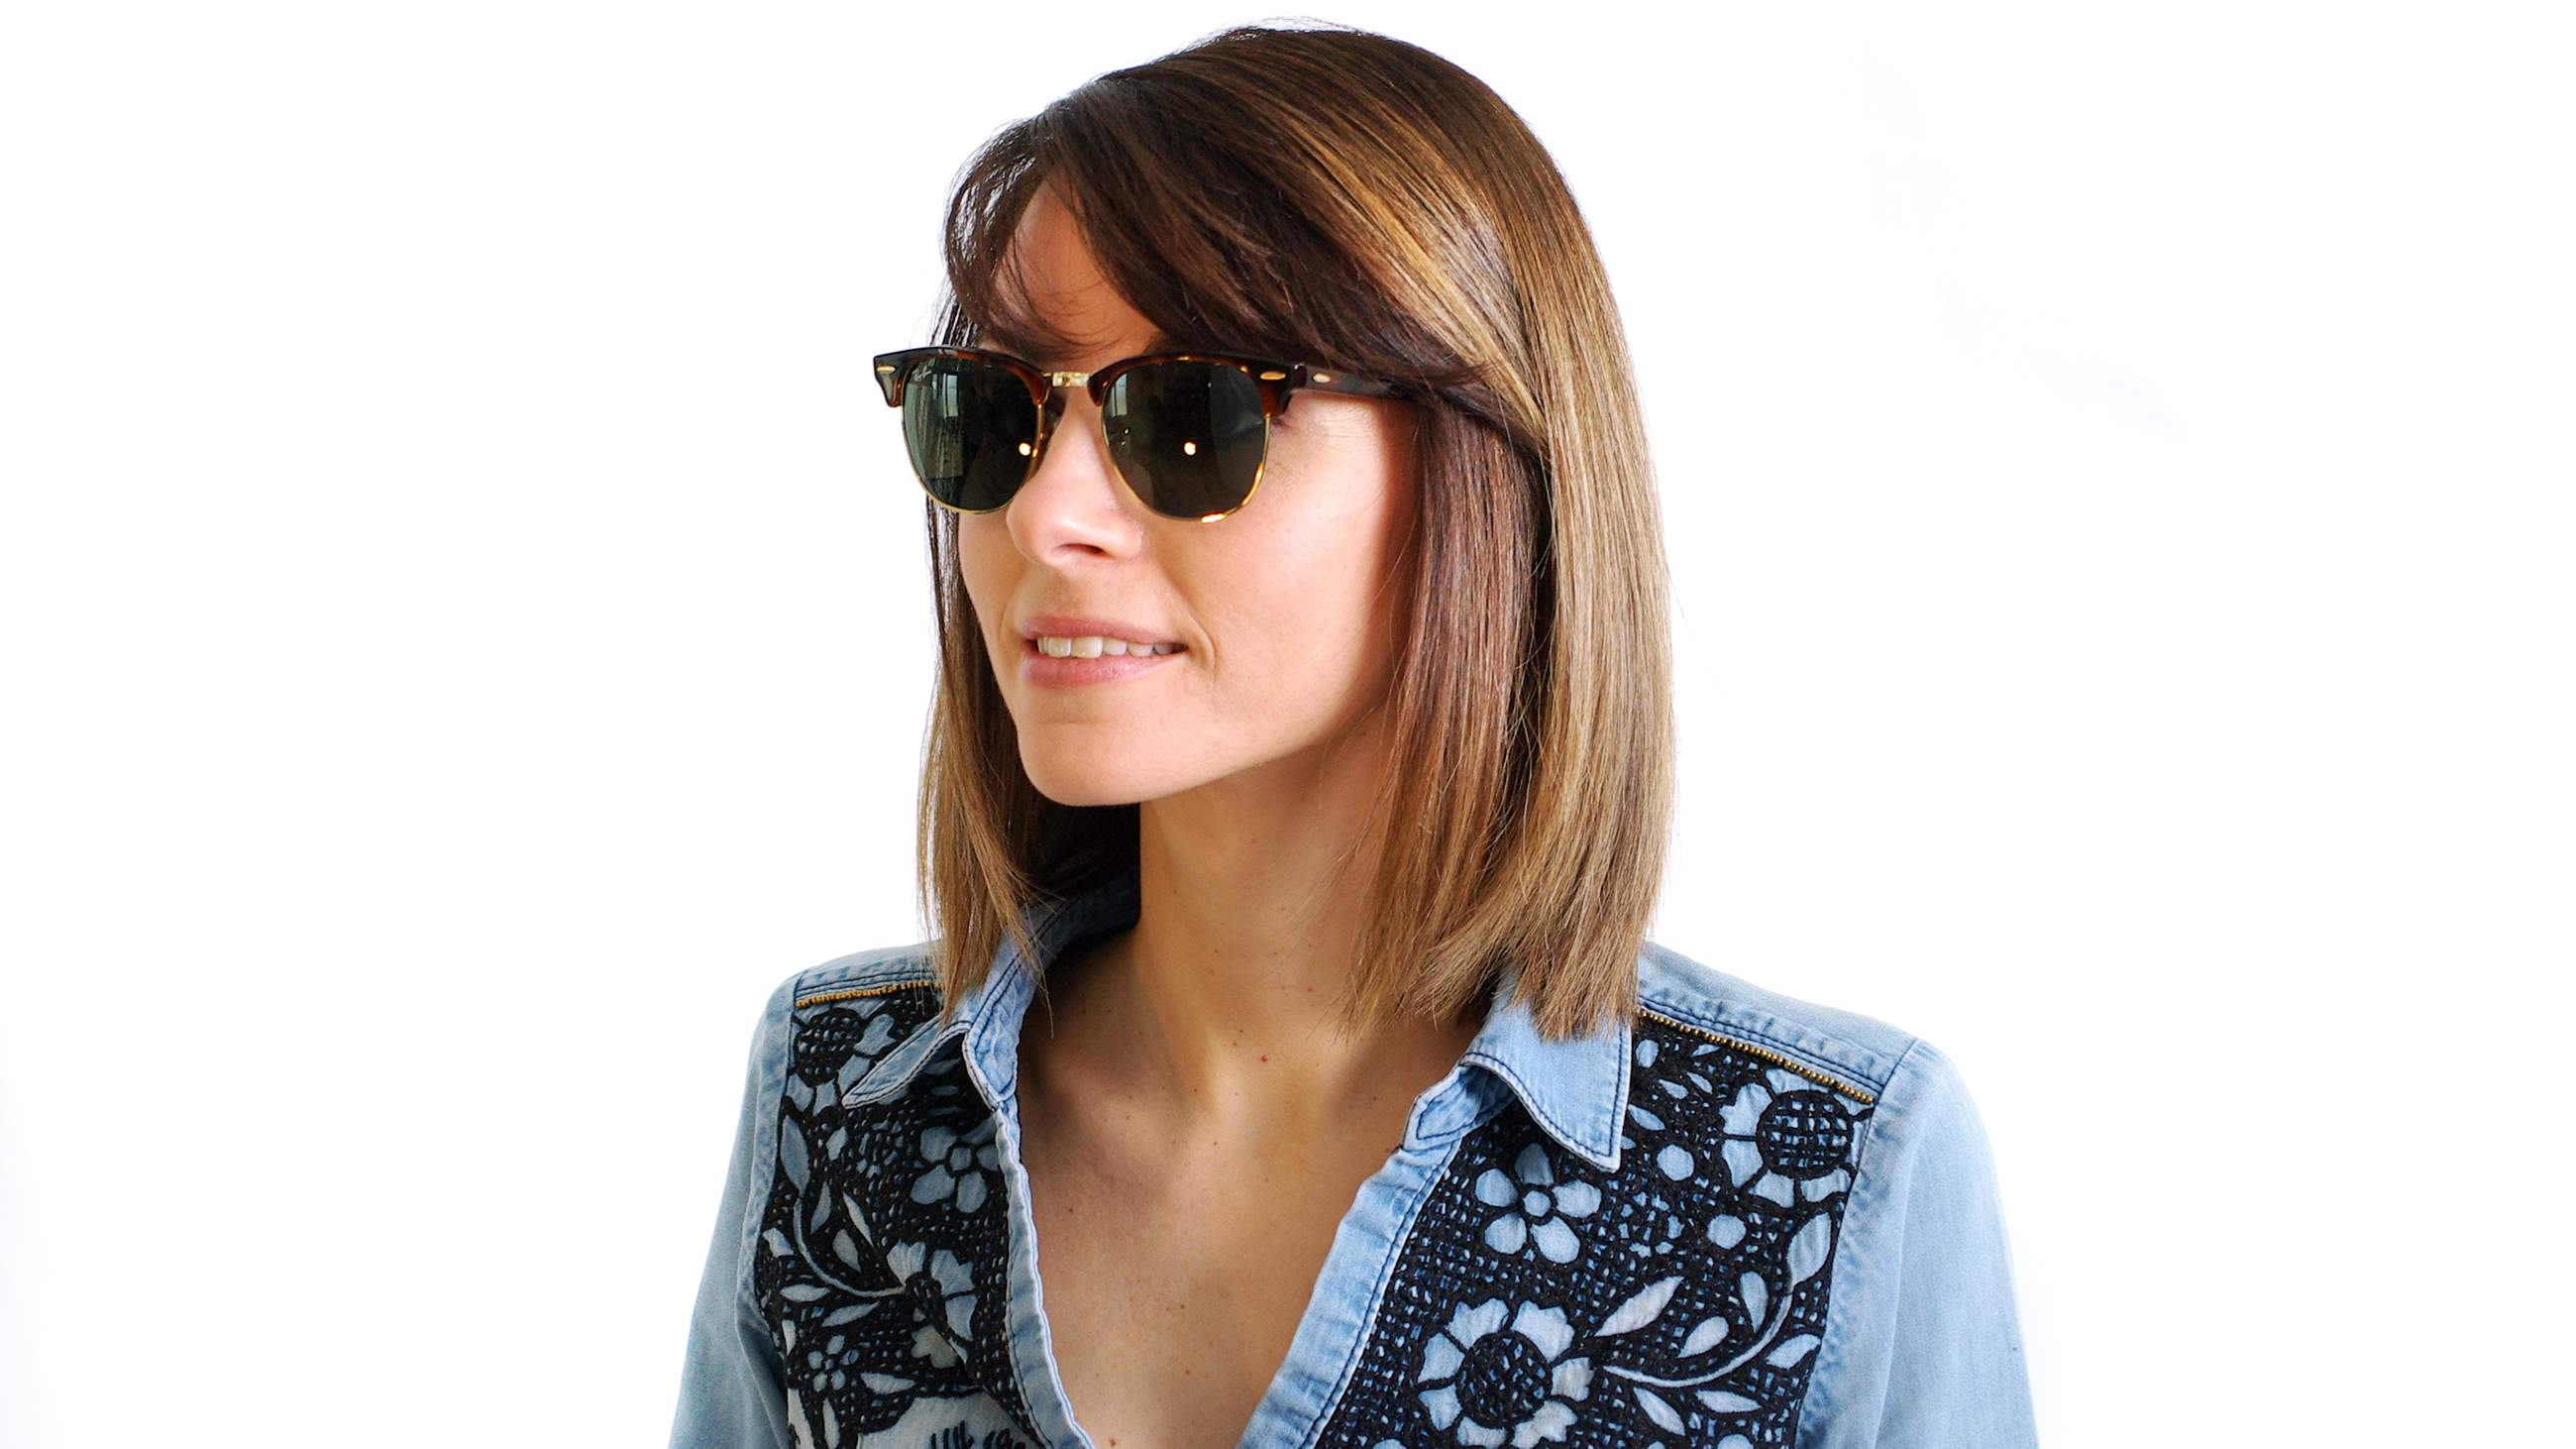 ray ban clubmaster classic femme